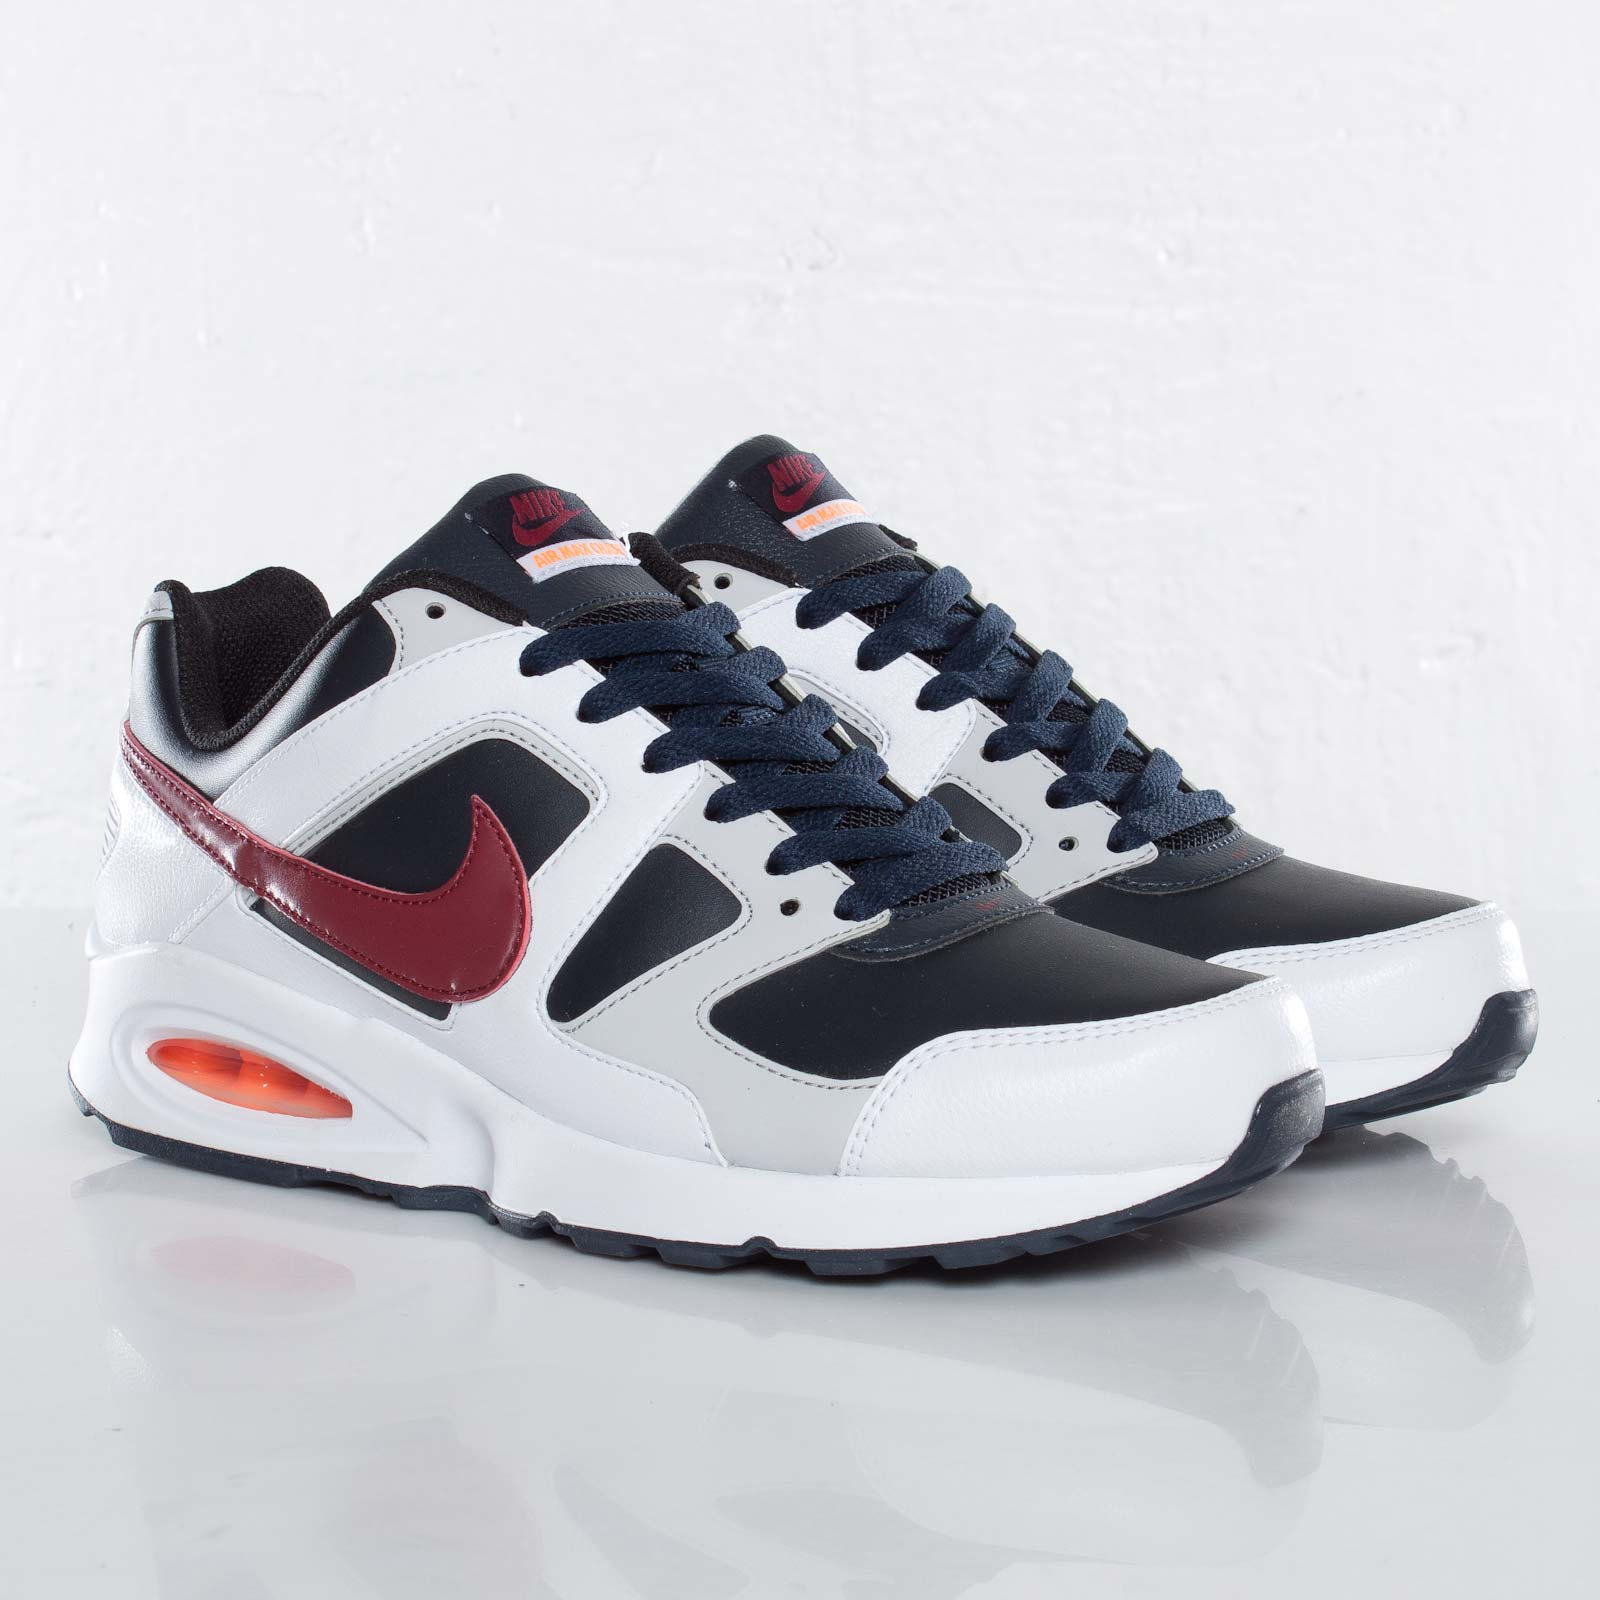 472777 Sneakers Chase Leather Air Max 461 Sneakersnstuff Nike I0FqwPw